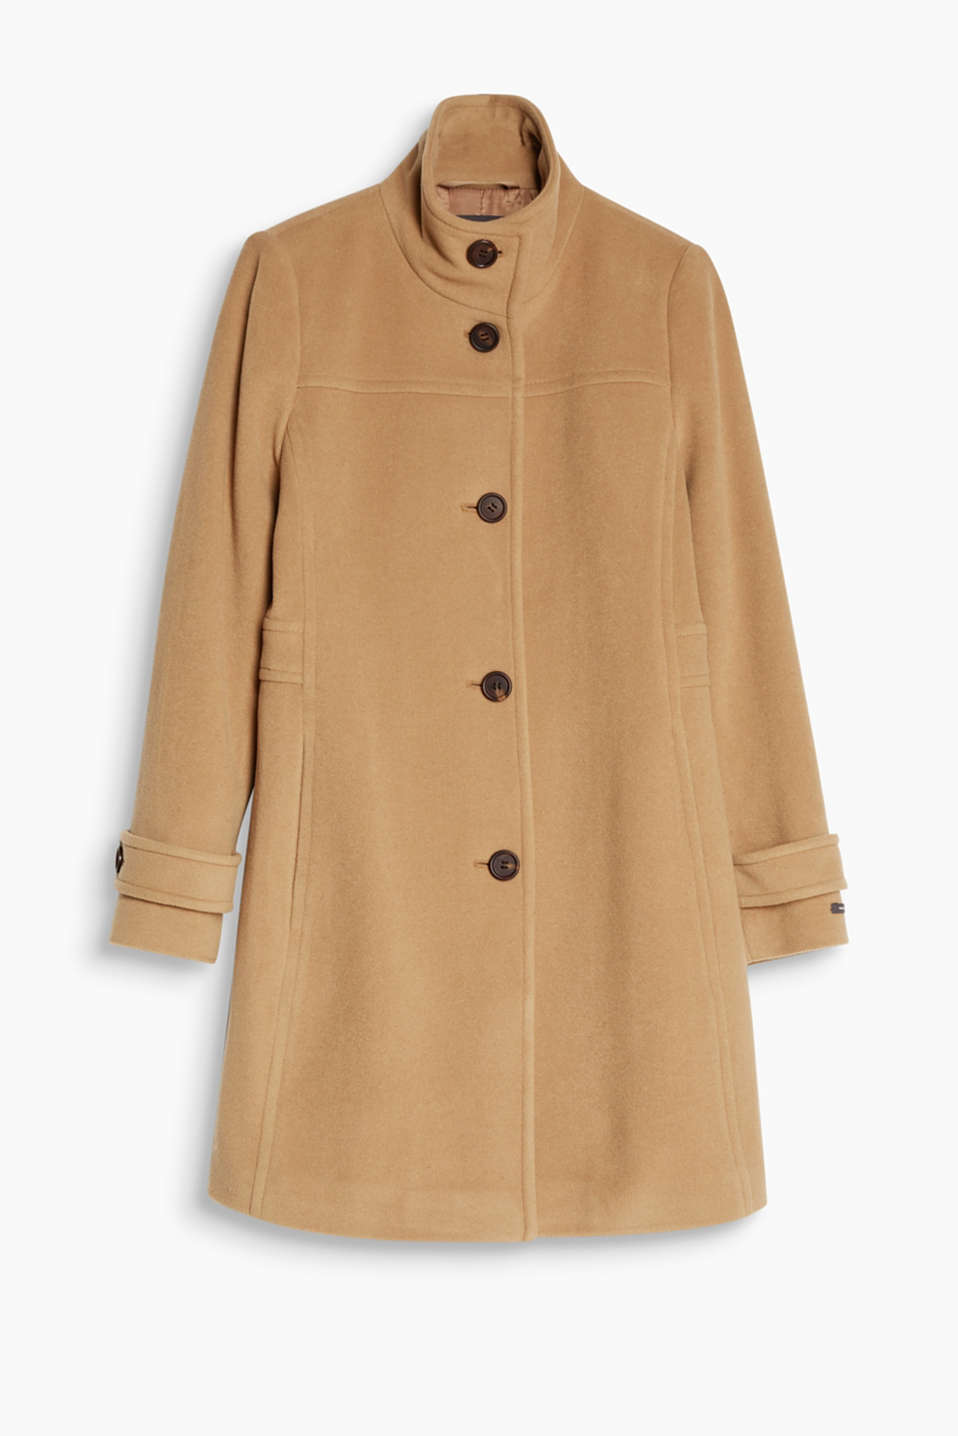 Versatile classic: this slightly fitted, stand-up collar coat with exquisite cashmere has got your back wherever you may go!